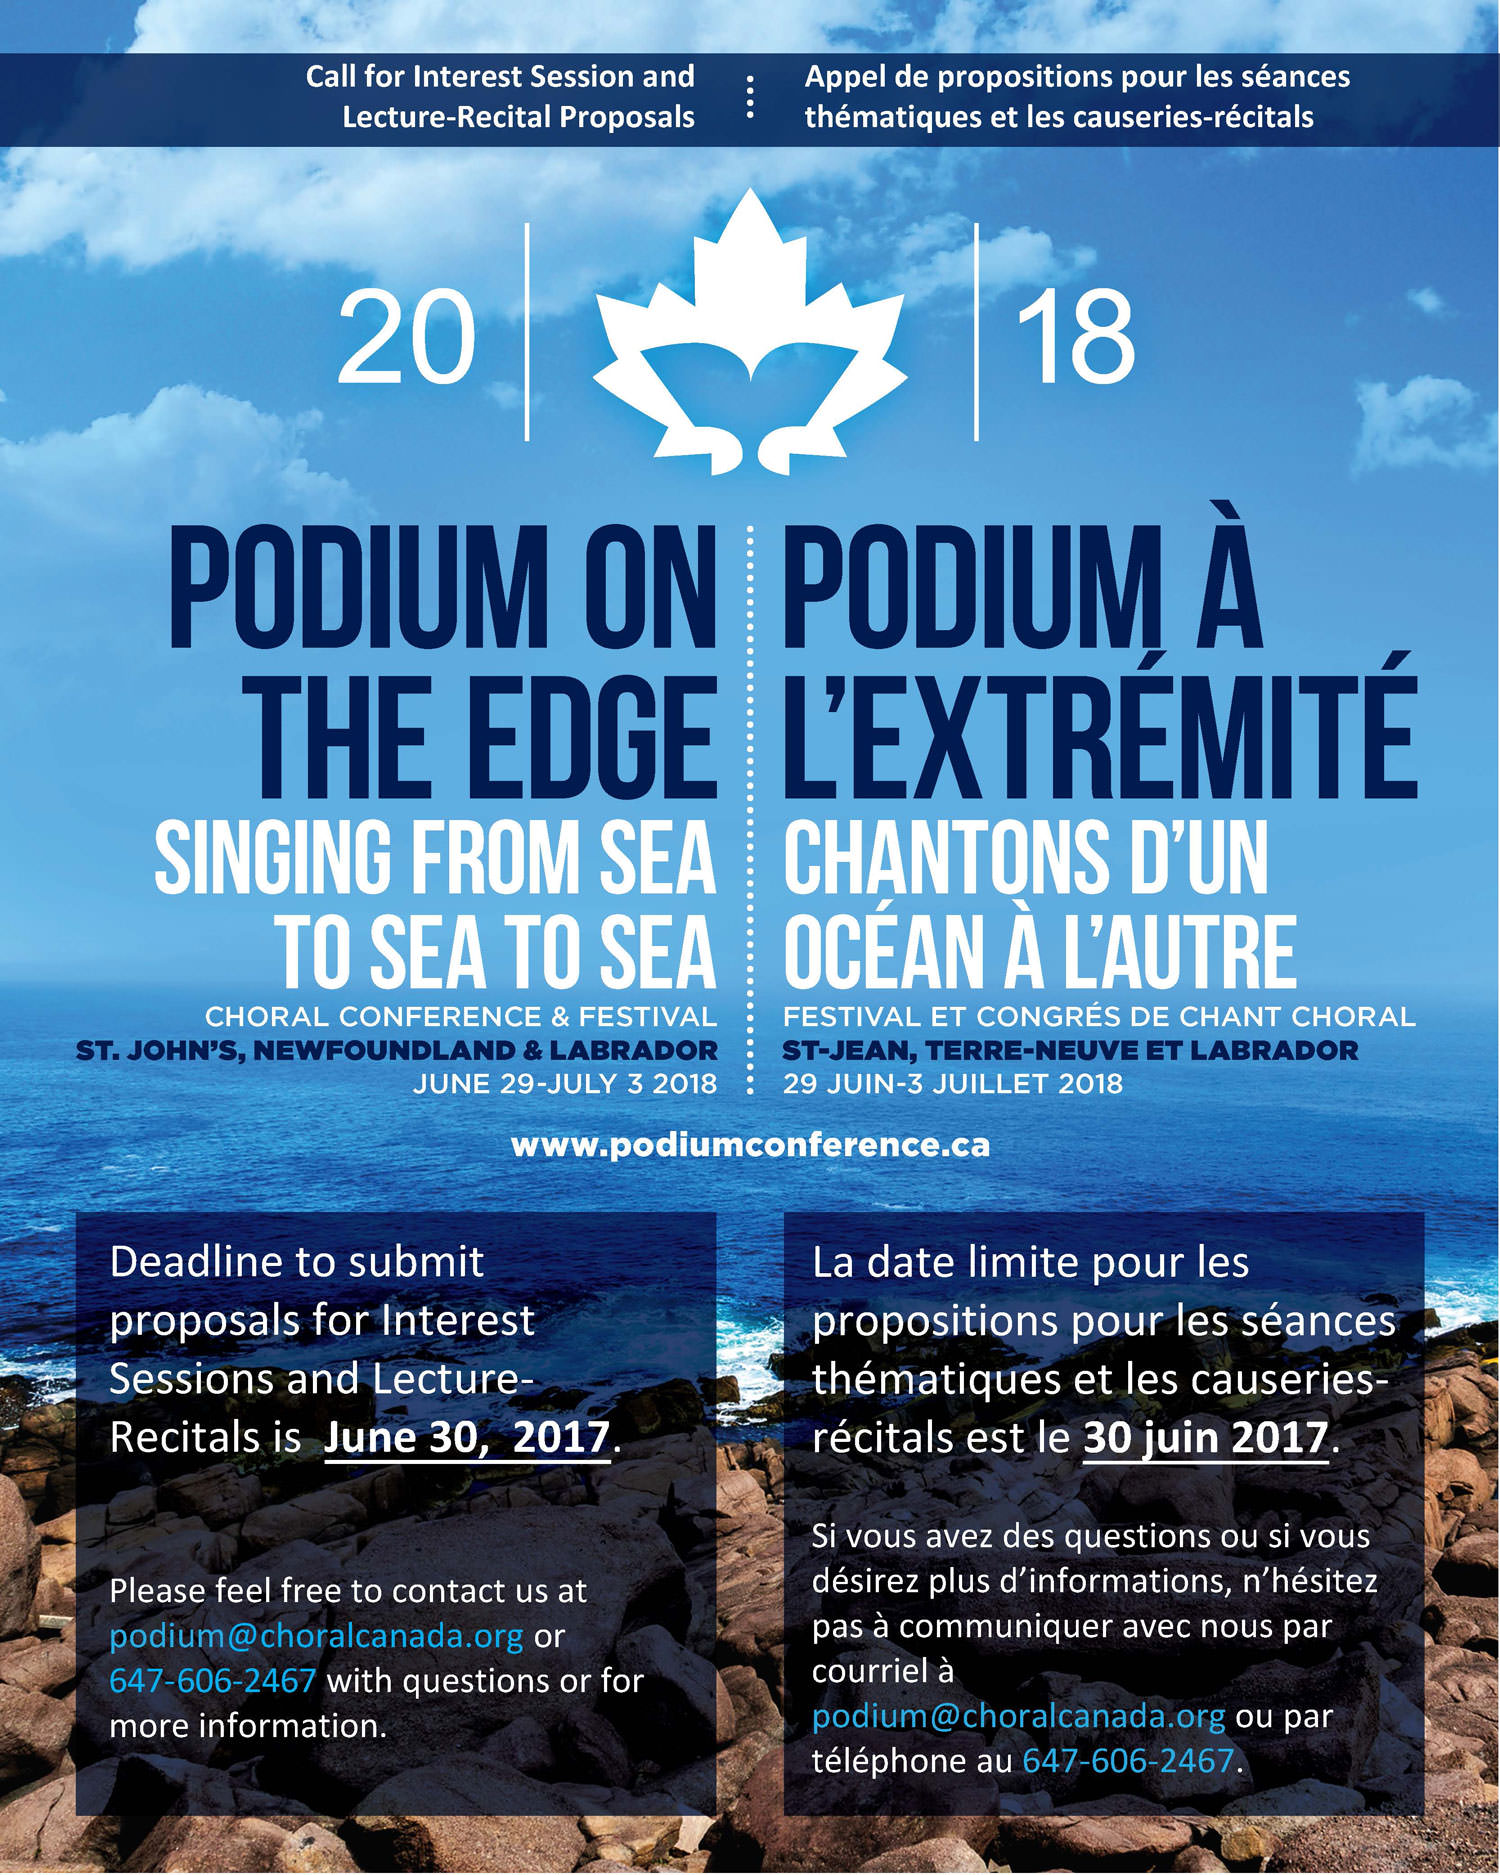 Podium 2018: Call for Interest Session and Lecture Recital Proposals